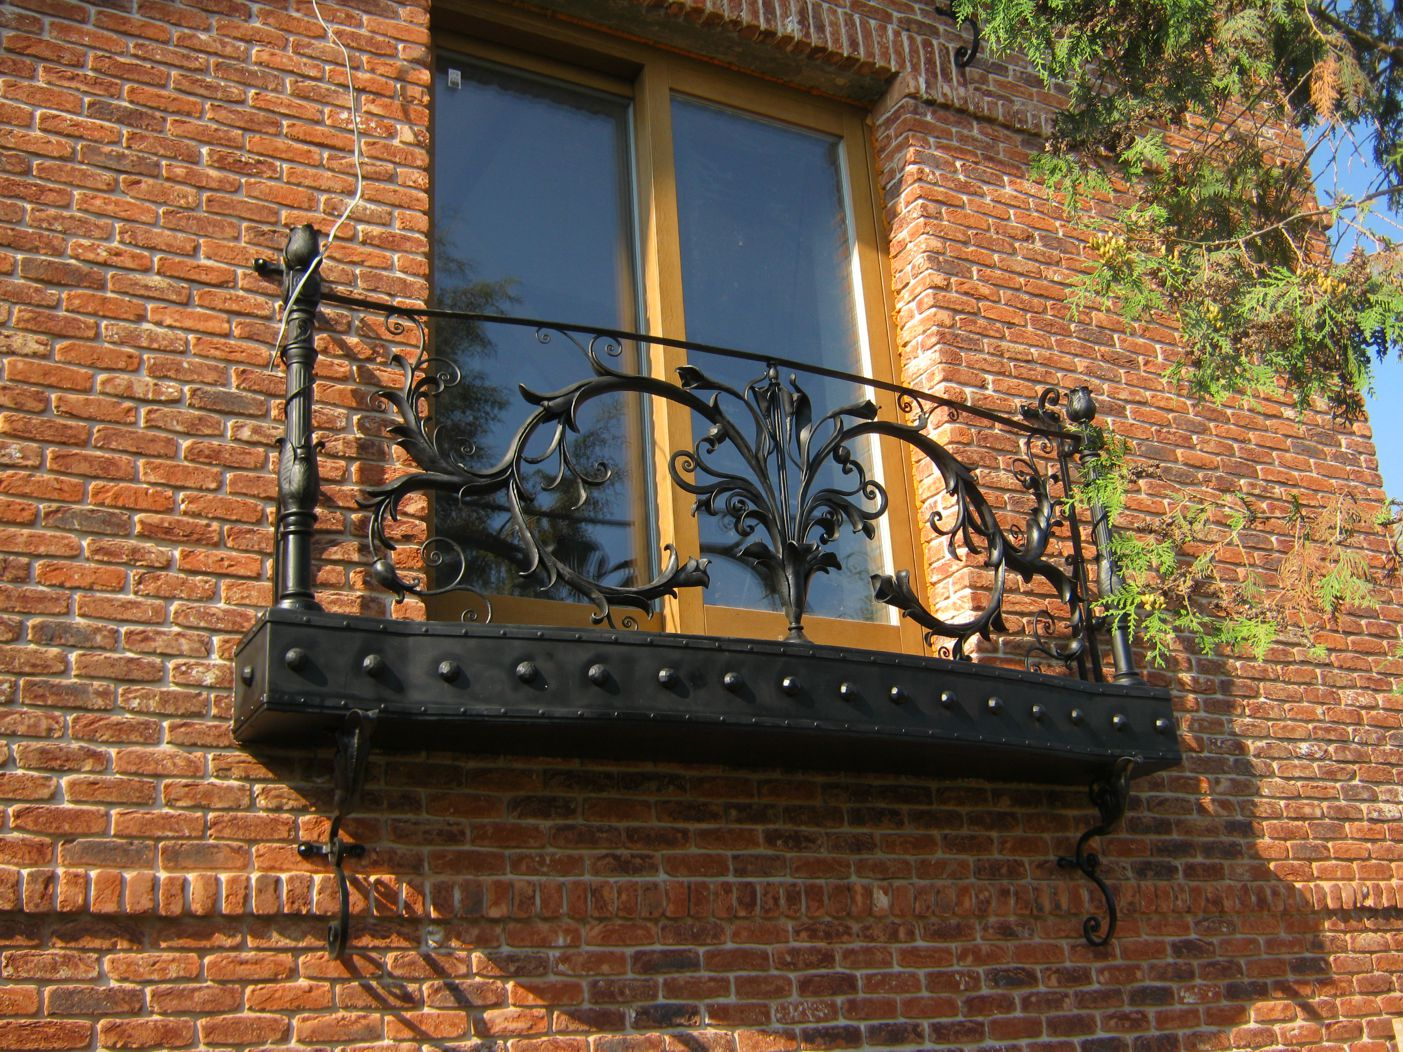 Simple modern decision of th eexterior with briks and massive forging